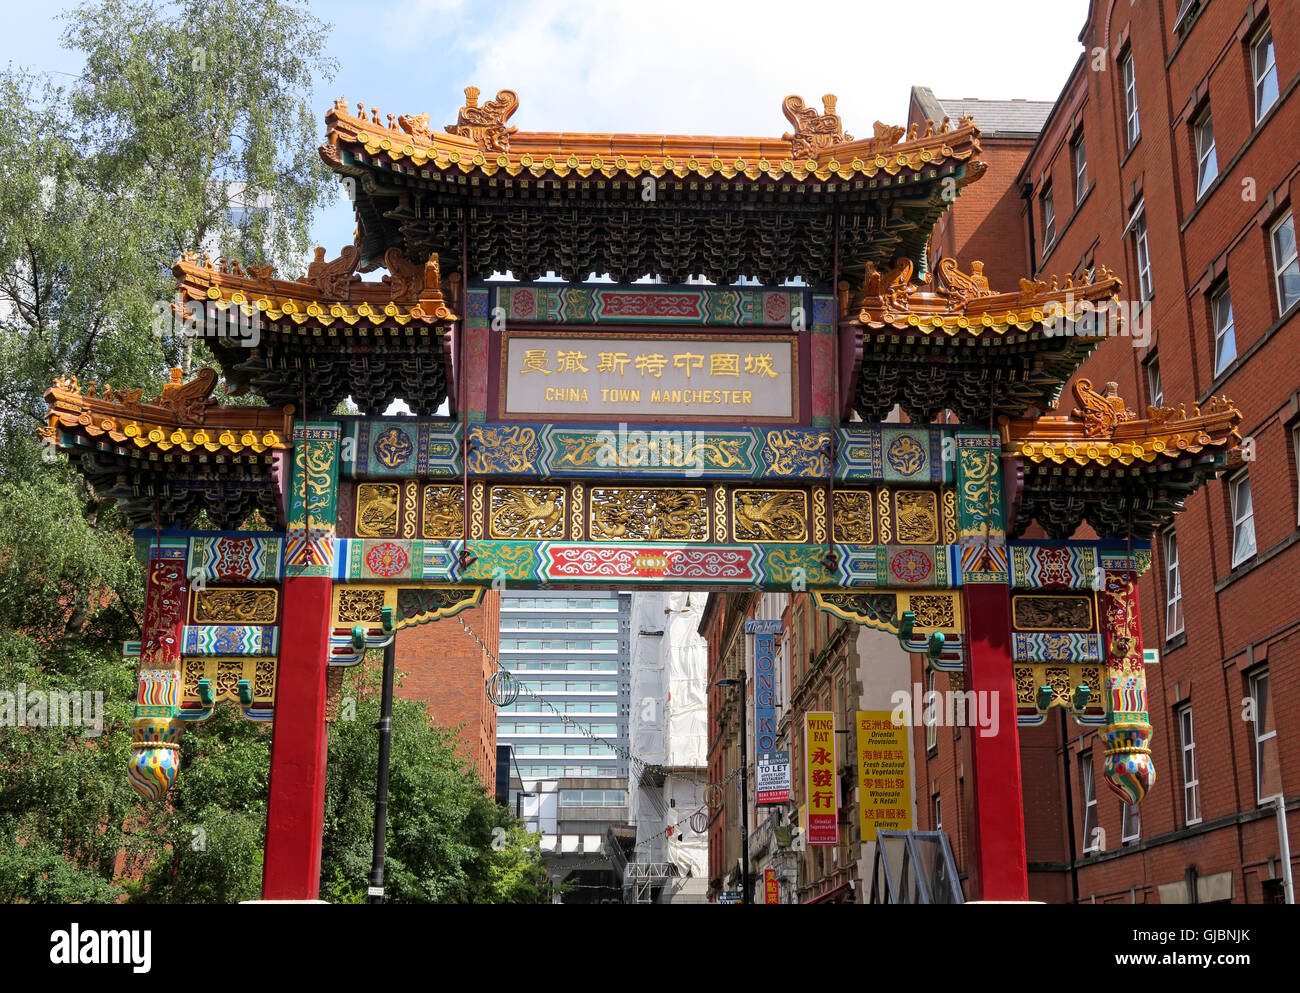 Archway ( paifang ), Manchester Chinatown,Faulkner Street, City Centre, Manchester, North West England, UK Stock Photo